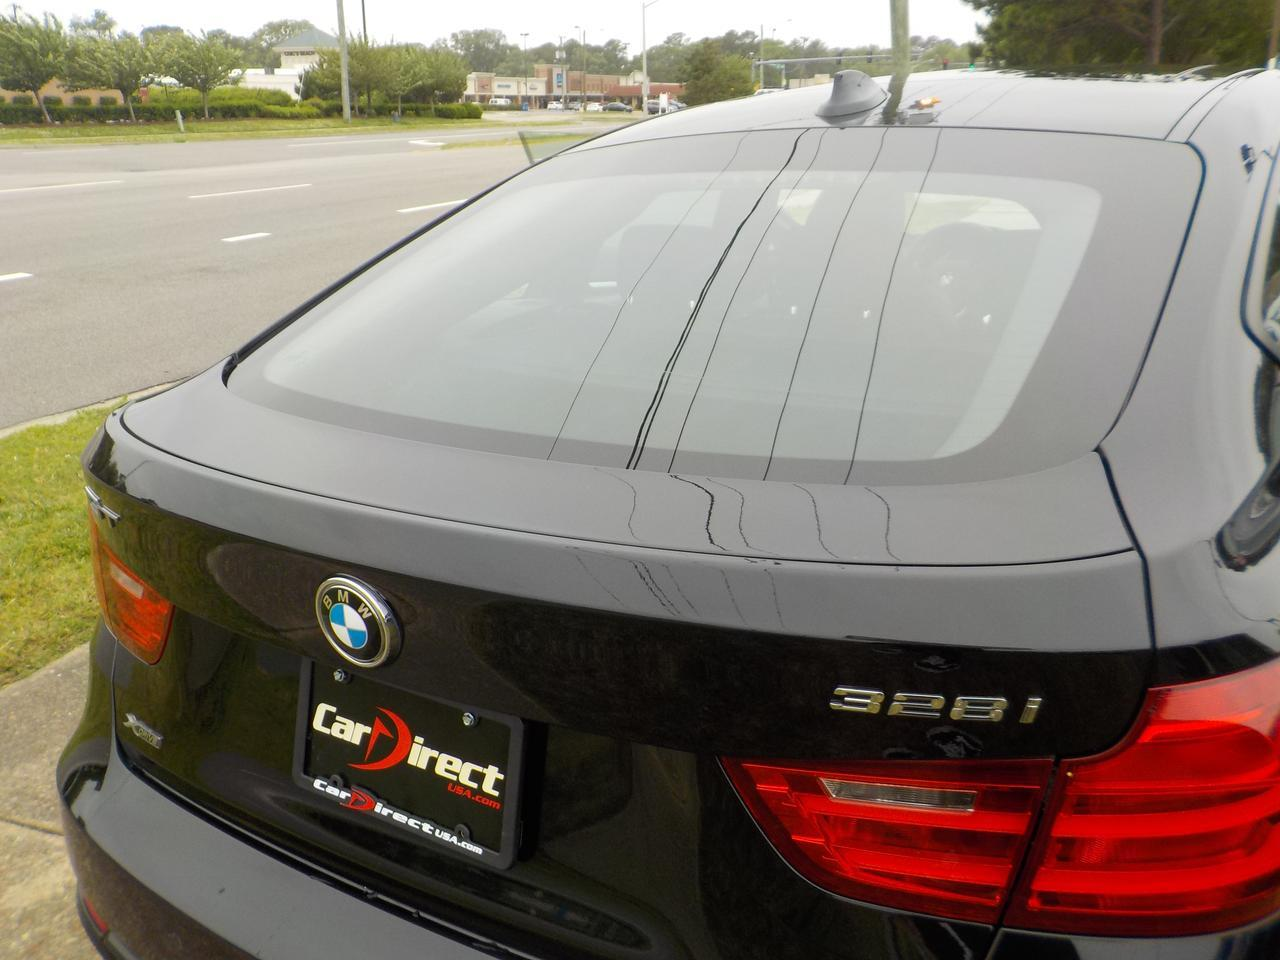 2016 BMW 328i XDRIVE GRAN TURISMO, LEATHER, NAV, HEATED SEATS, PANORAMIC ROOF, BLUEOOTH, BACKUP CAM, 1 OWNER! Virginia Beach VA